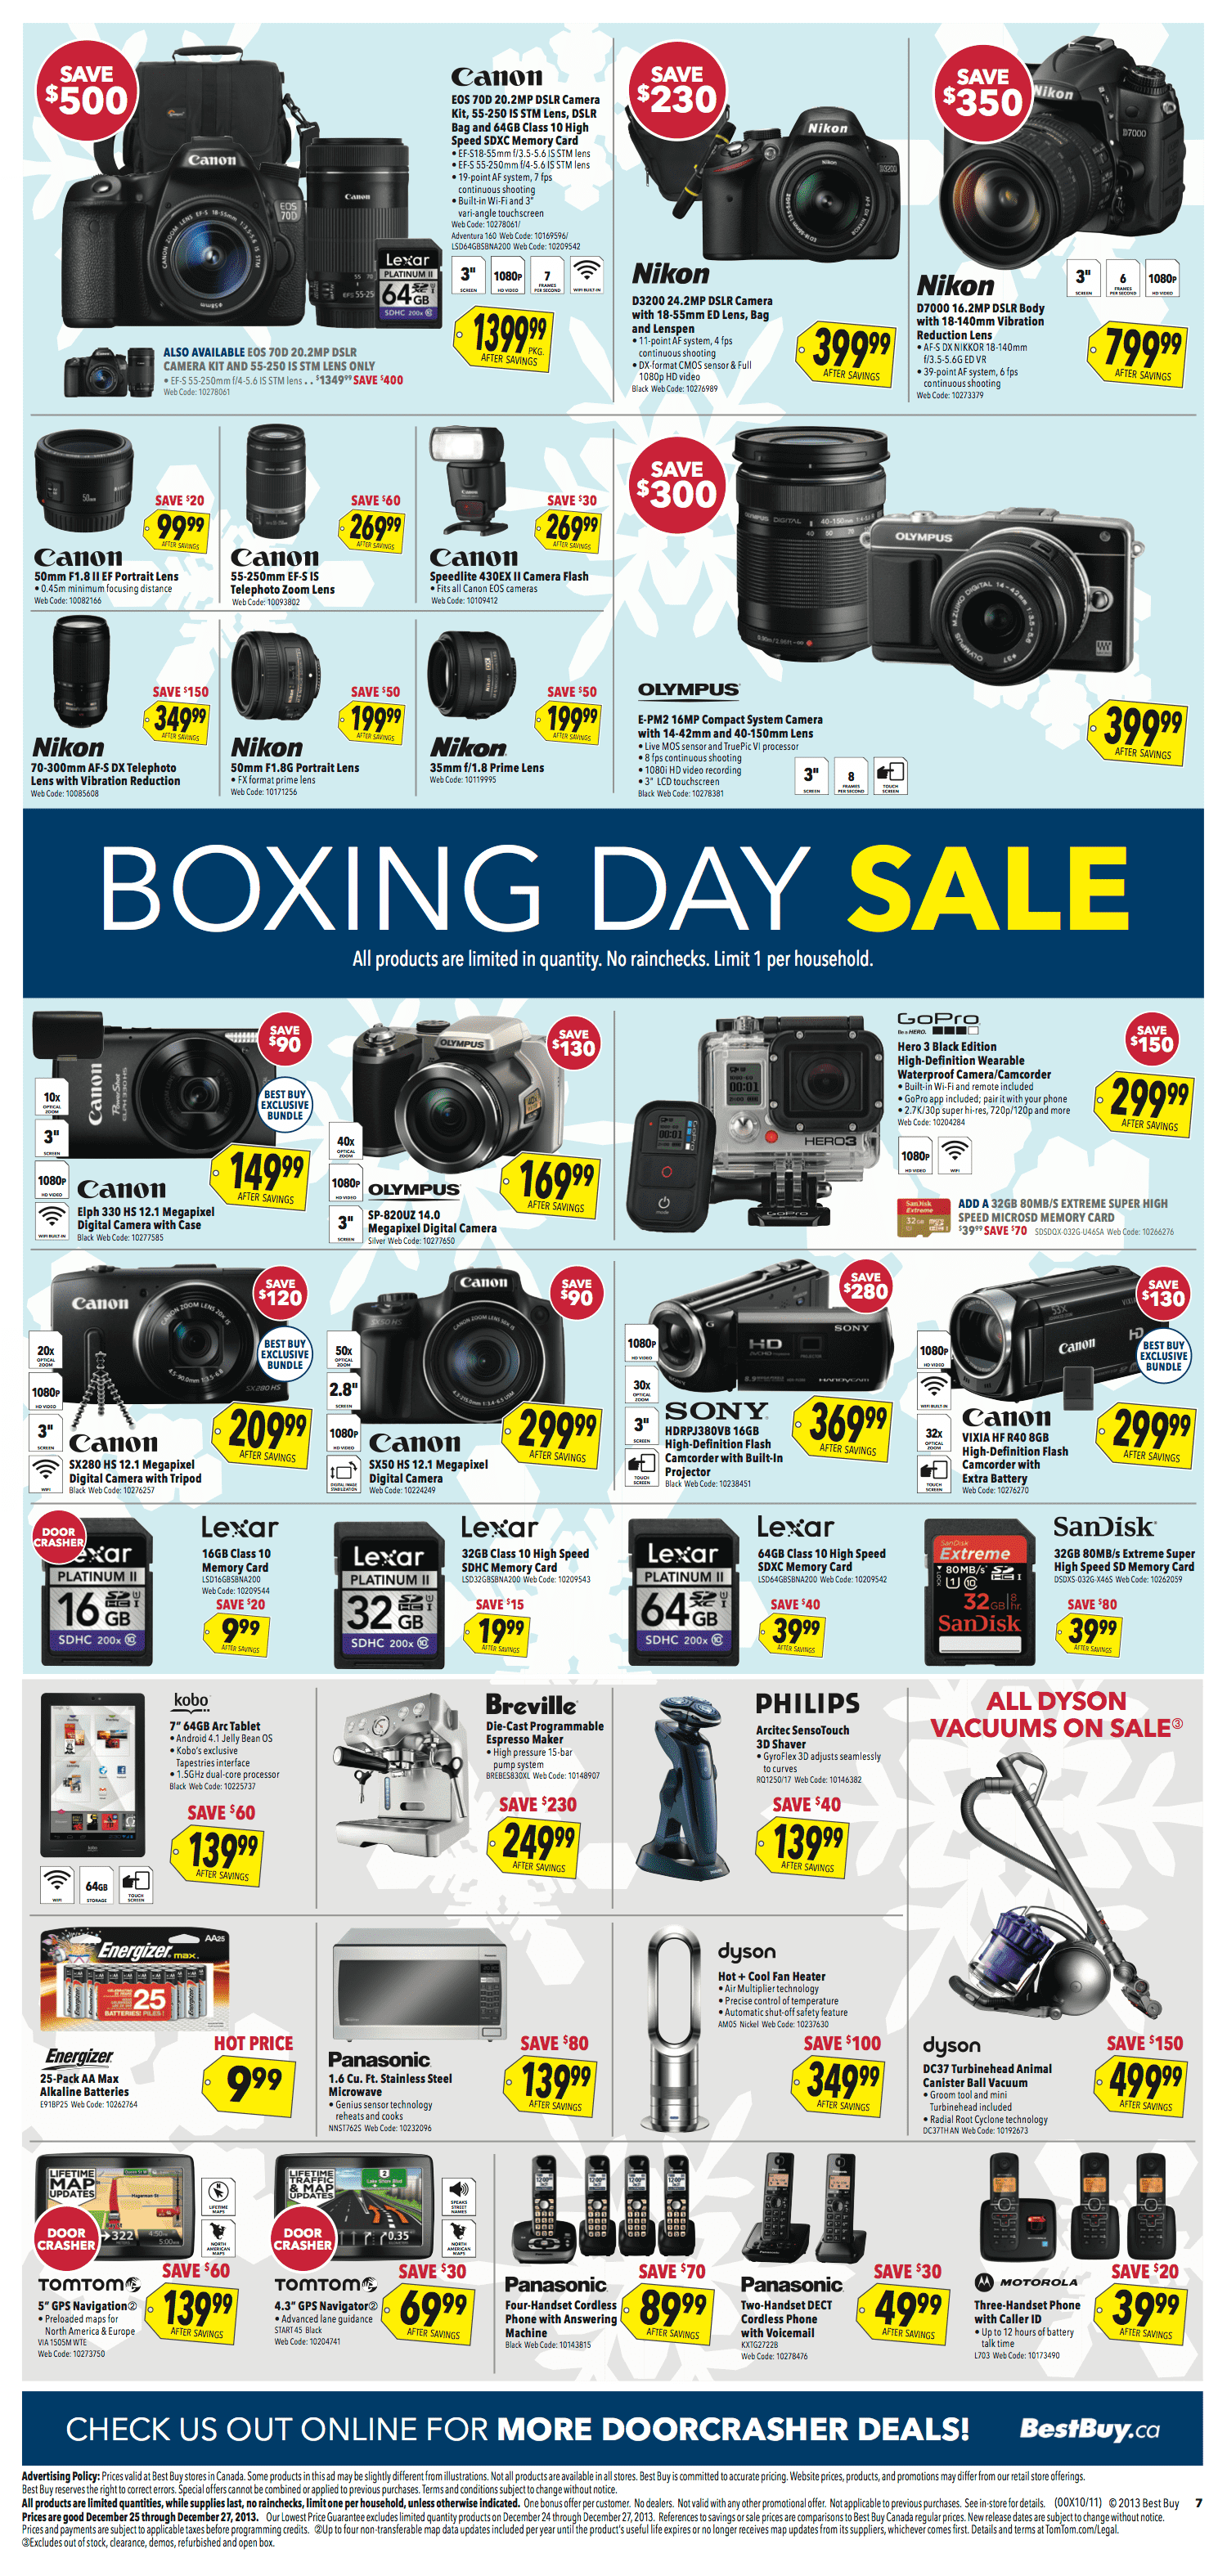 Best buy boxing day deals canada : Dominos pizza coupons buy